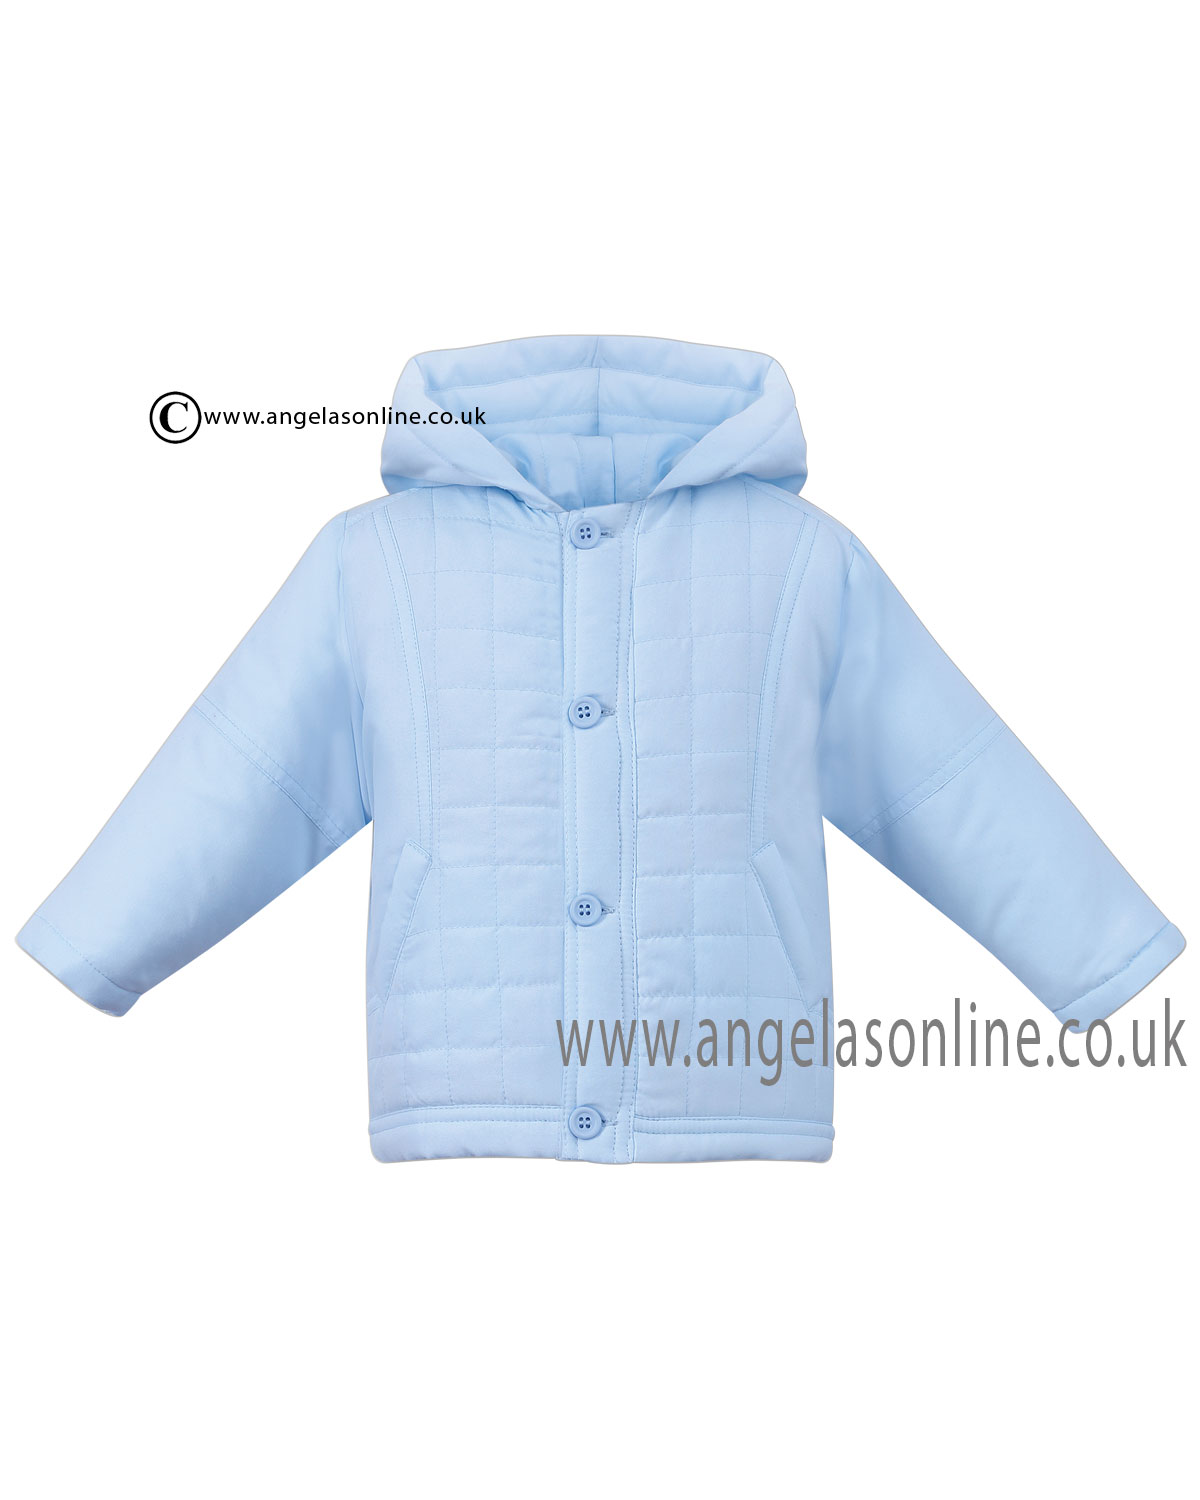 27f4272b5 Sarah Louise baby boys summer hooded pale blue jacket D09110